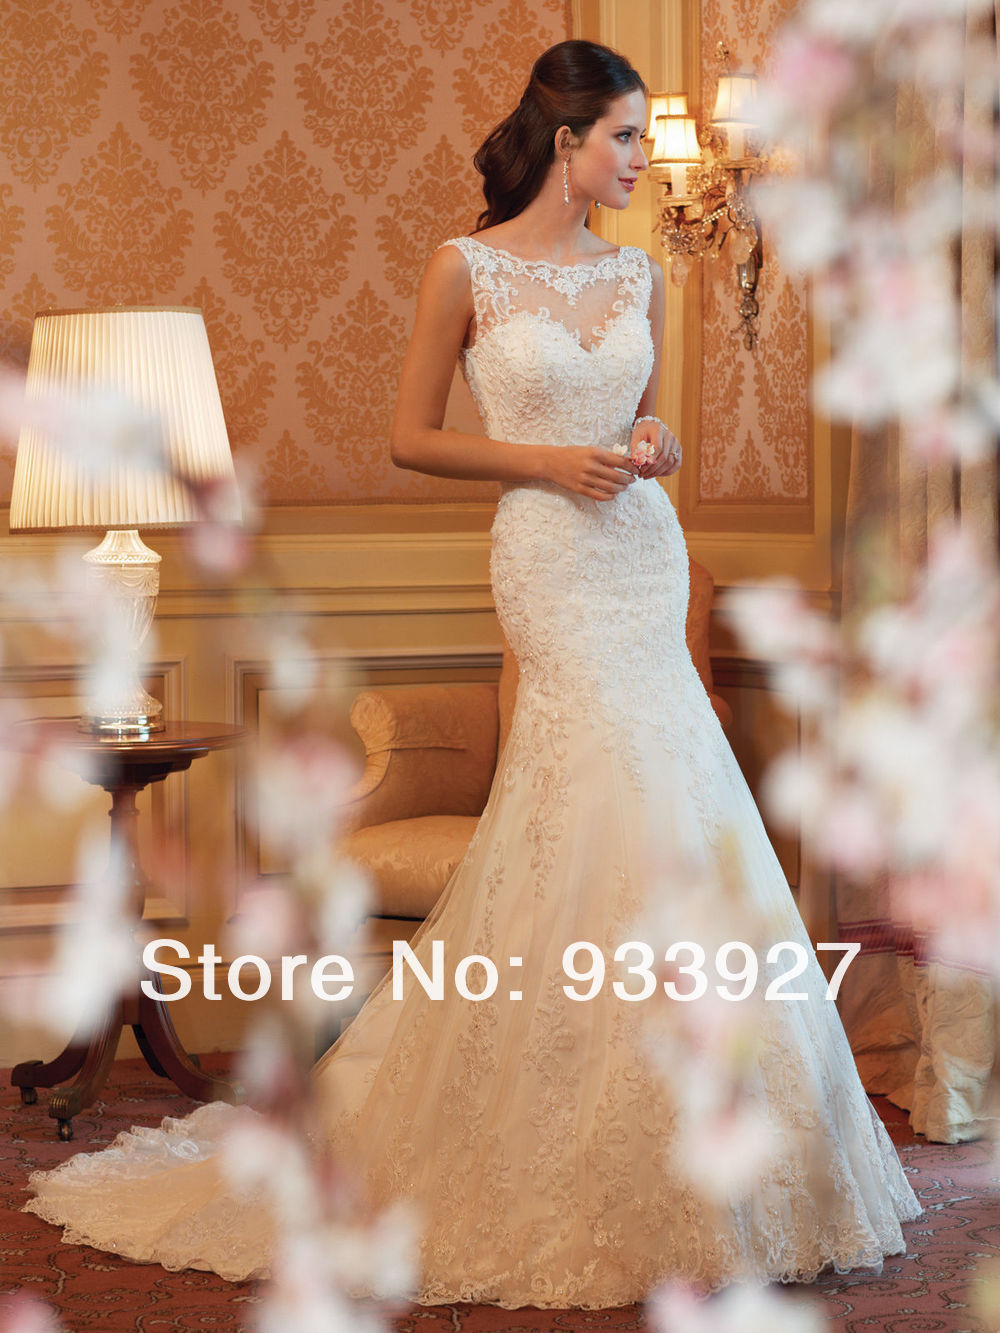 Hot sale2014 Latest White/Ivory Sweetheart Applique Beaded Strapless Mermaid Wedding Dress Customer Made Chapel Train Back Open(China (Mainland))